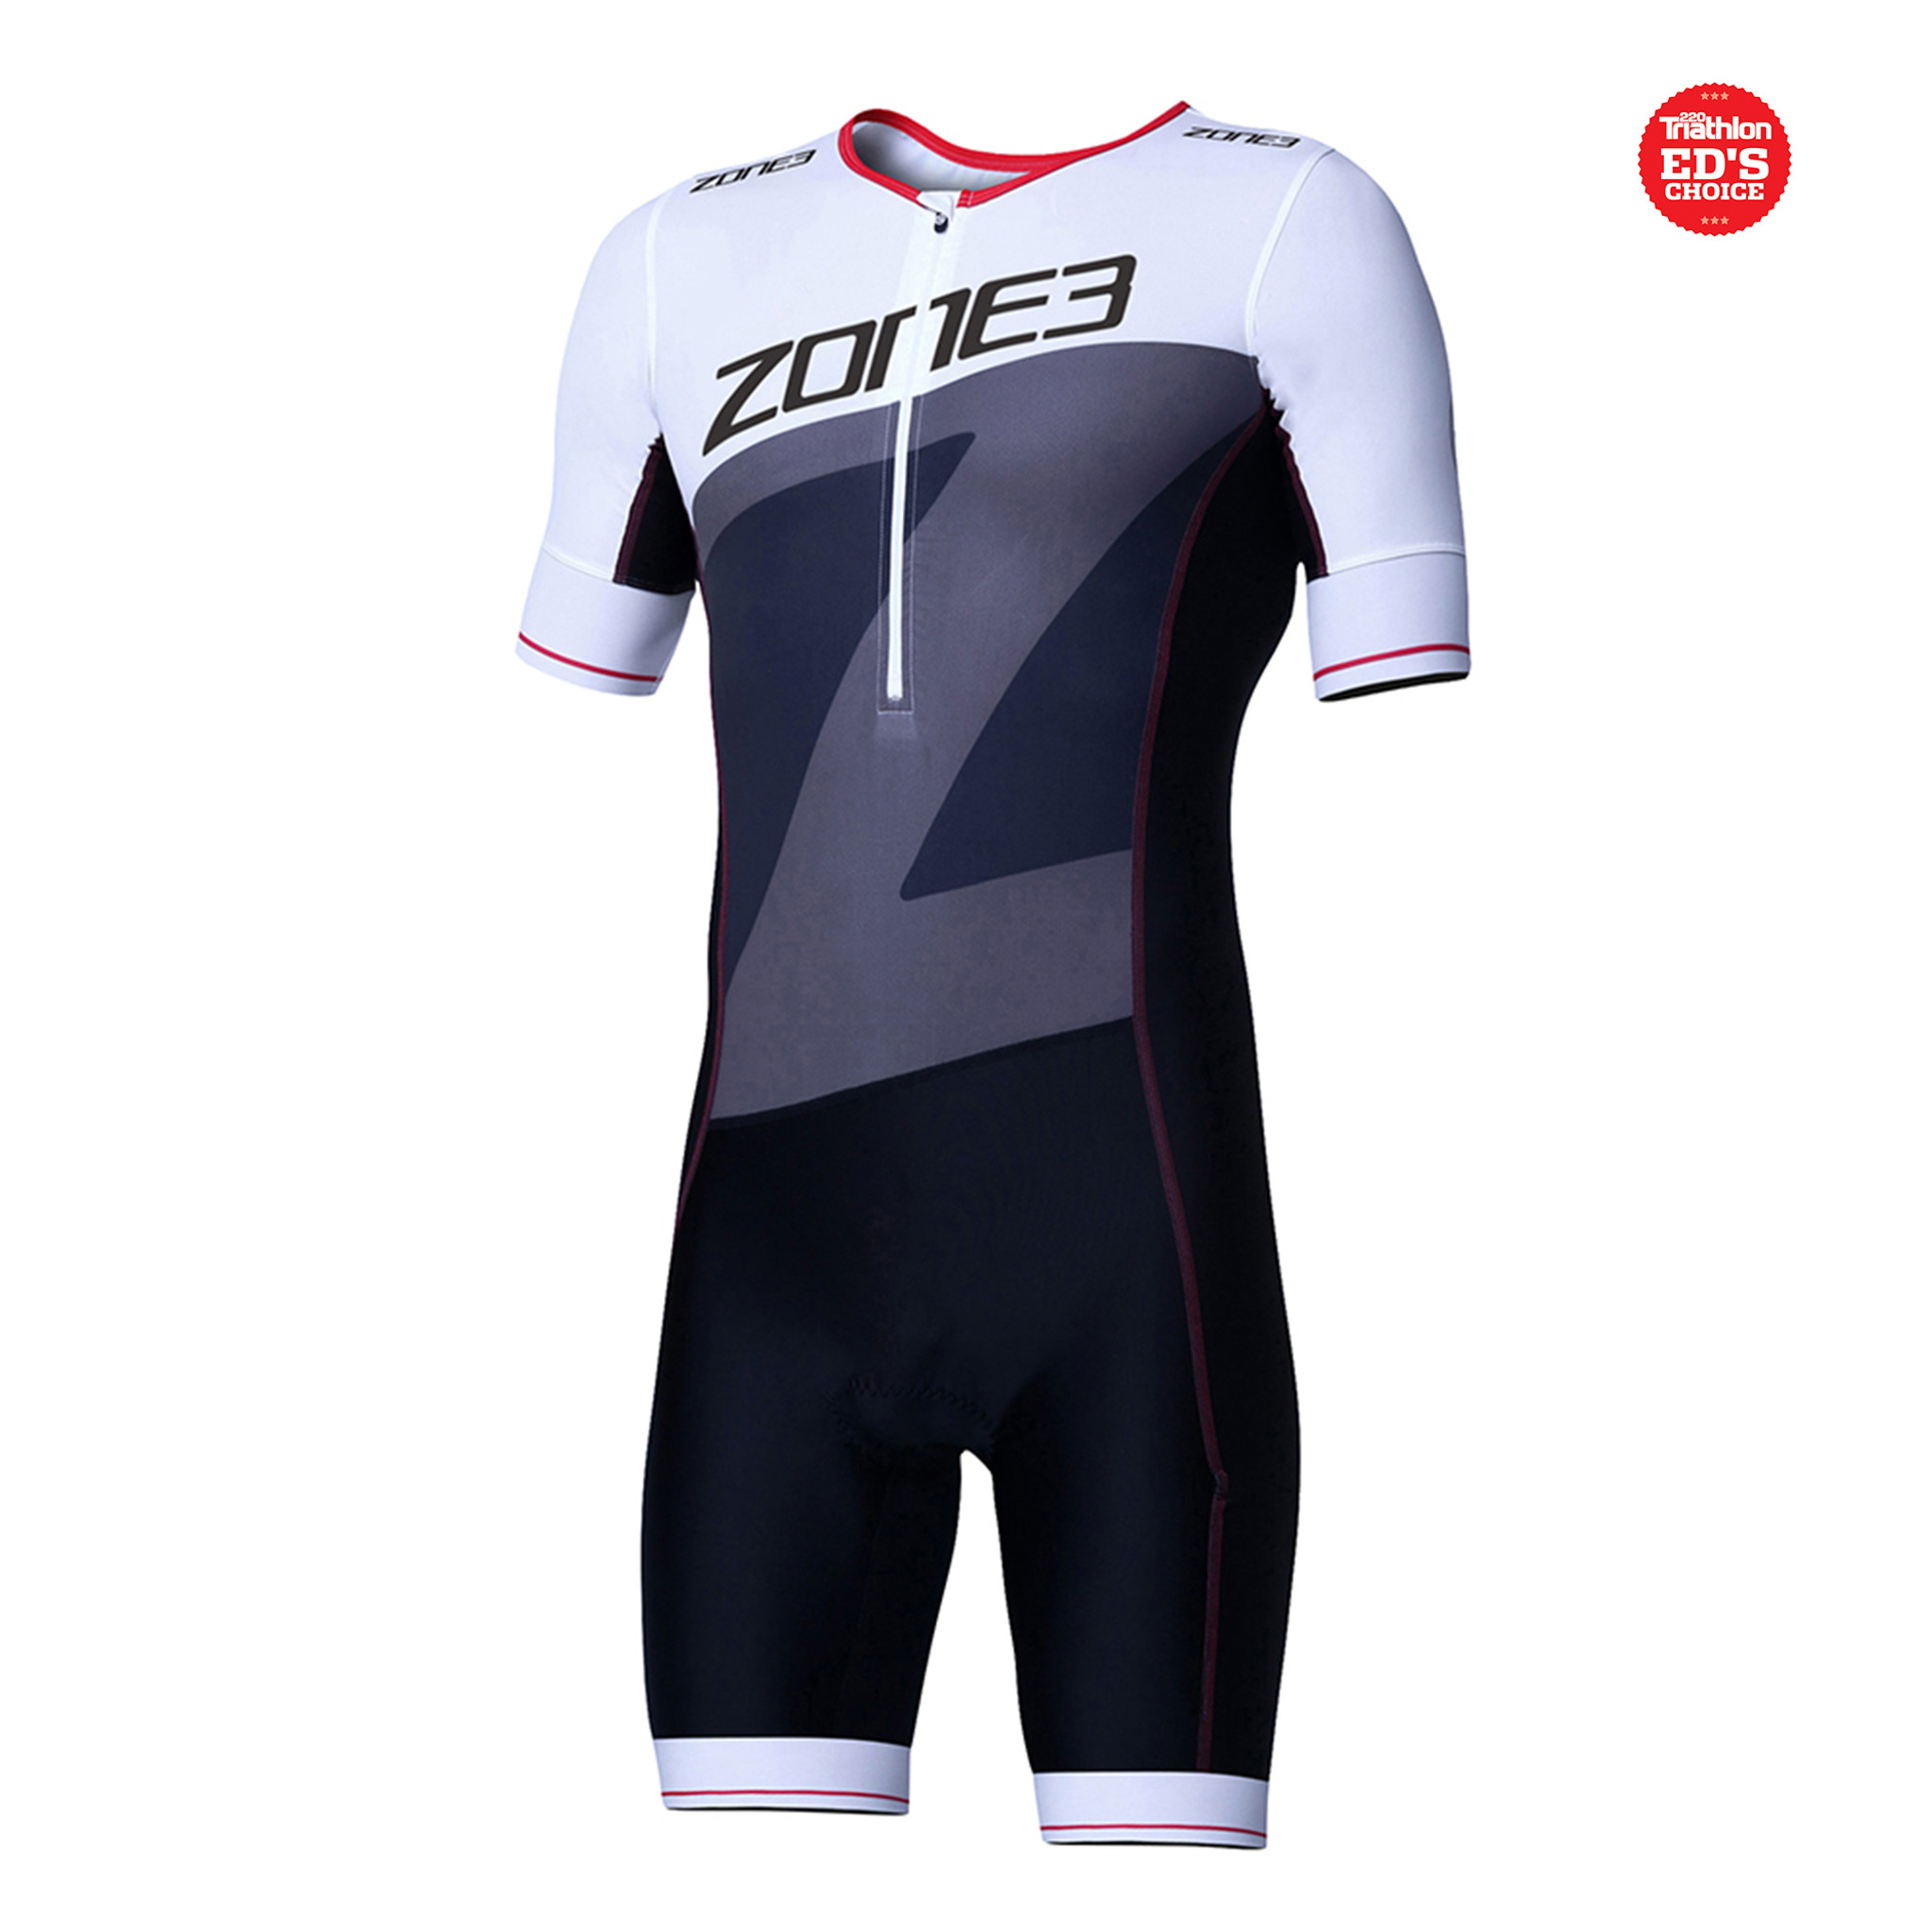 e9b2321f034a36 MyTriathlon | Zone3 Lava Sleeved Trisuit